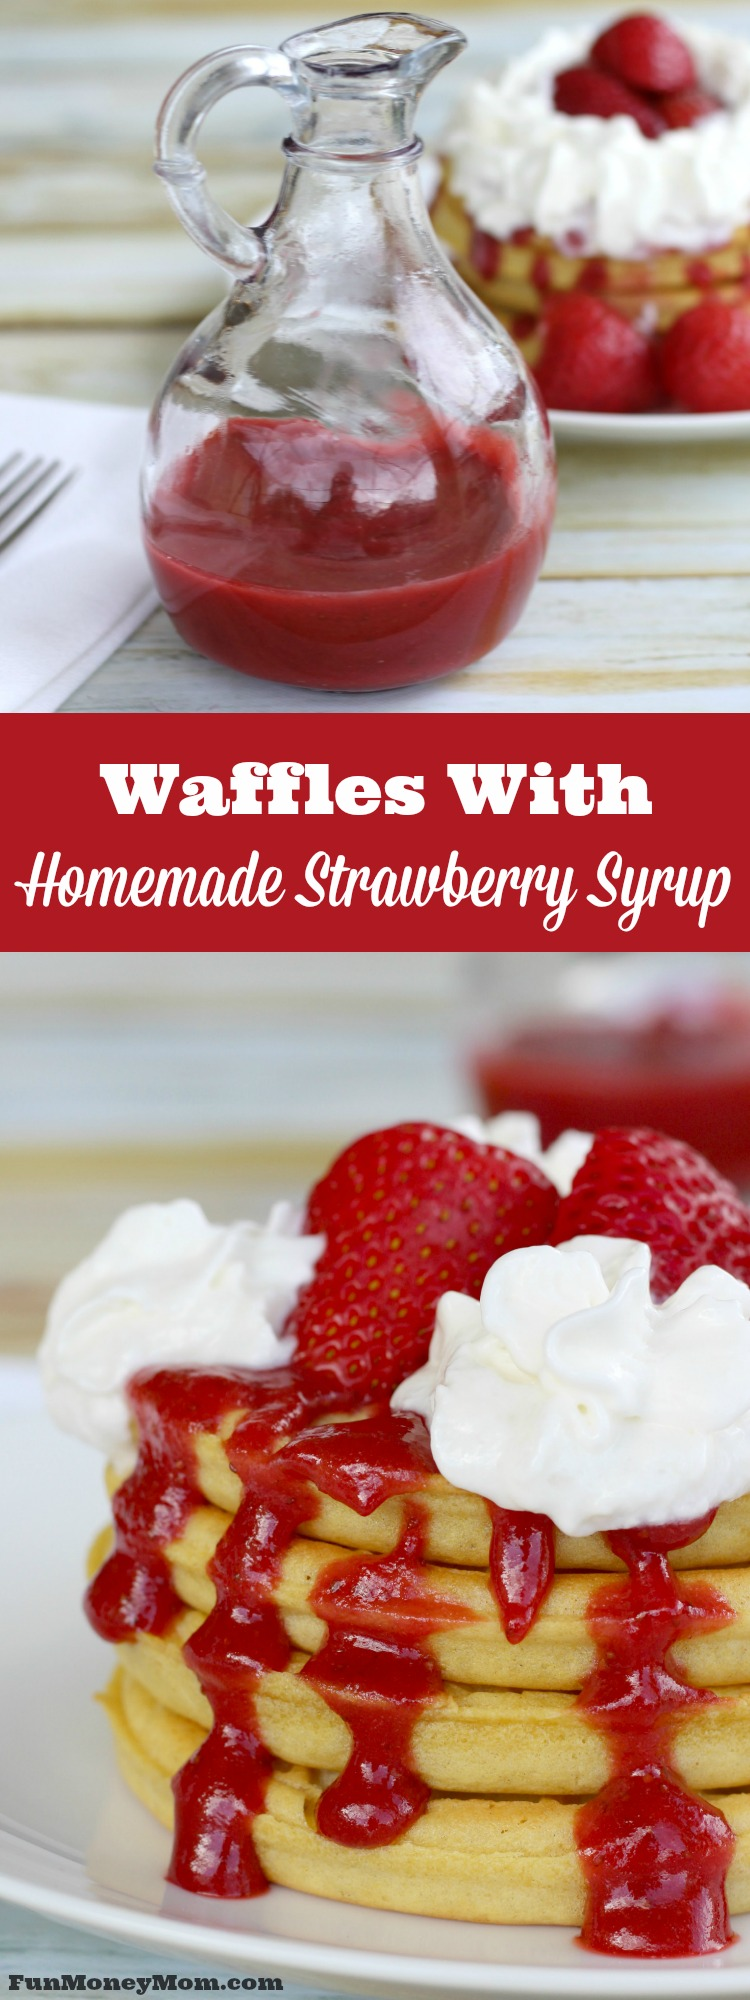 Want a fun breakfast that you can make in a hurry? These waffles with strawberry syrup will get your day off to a yummy start!